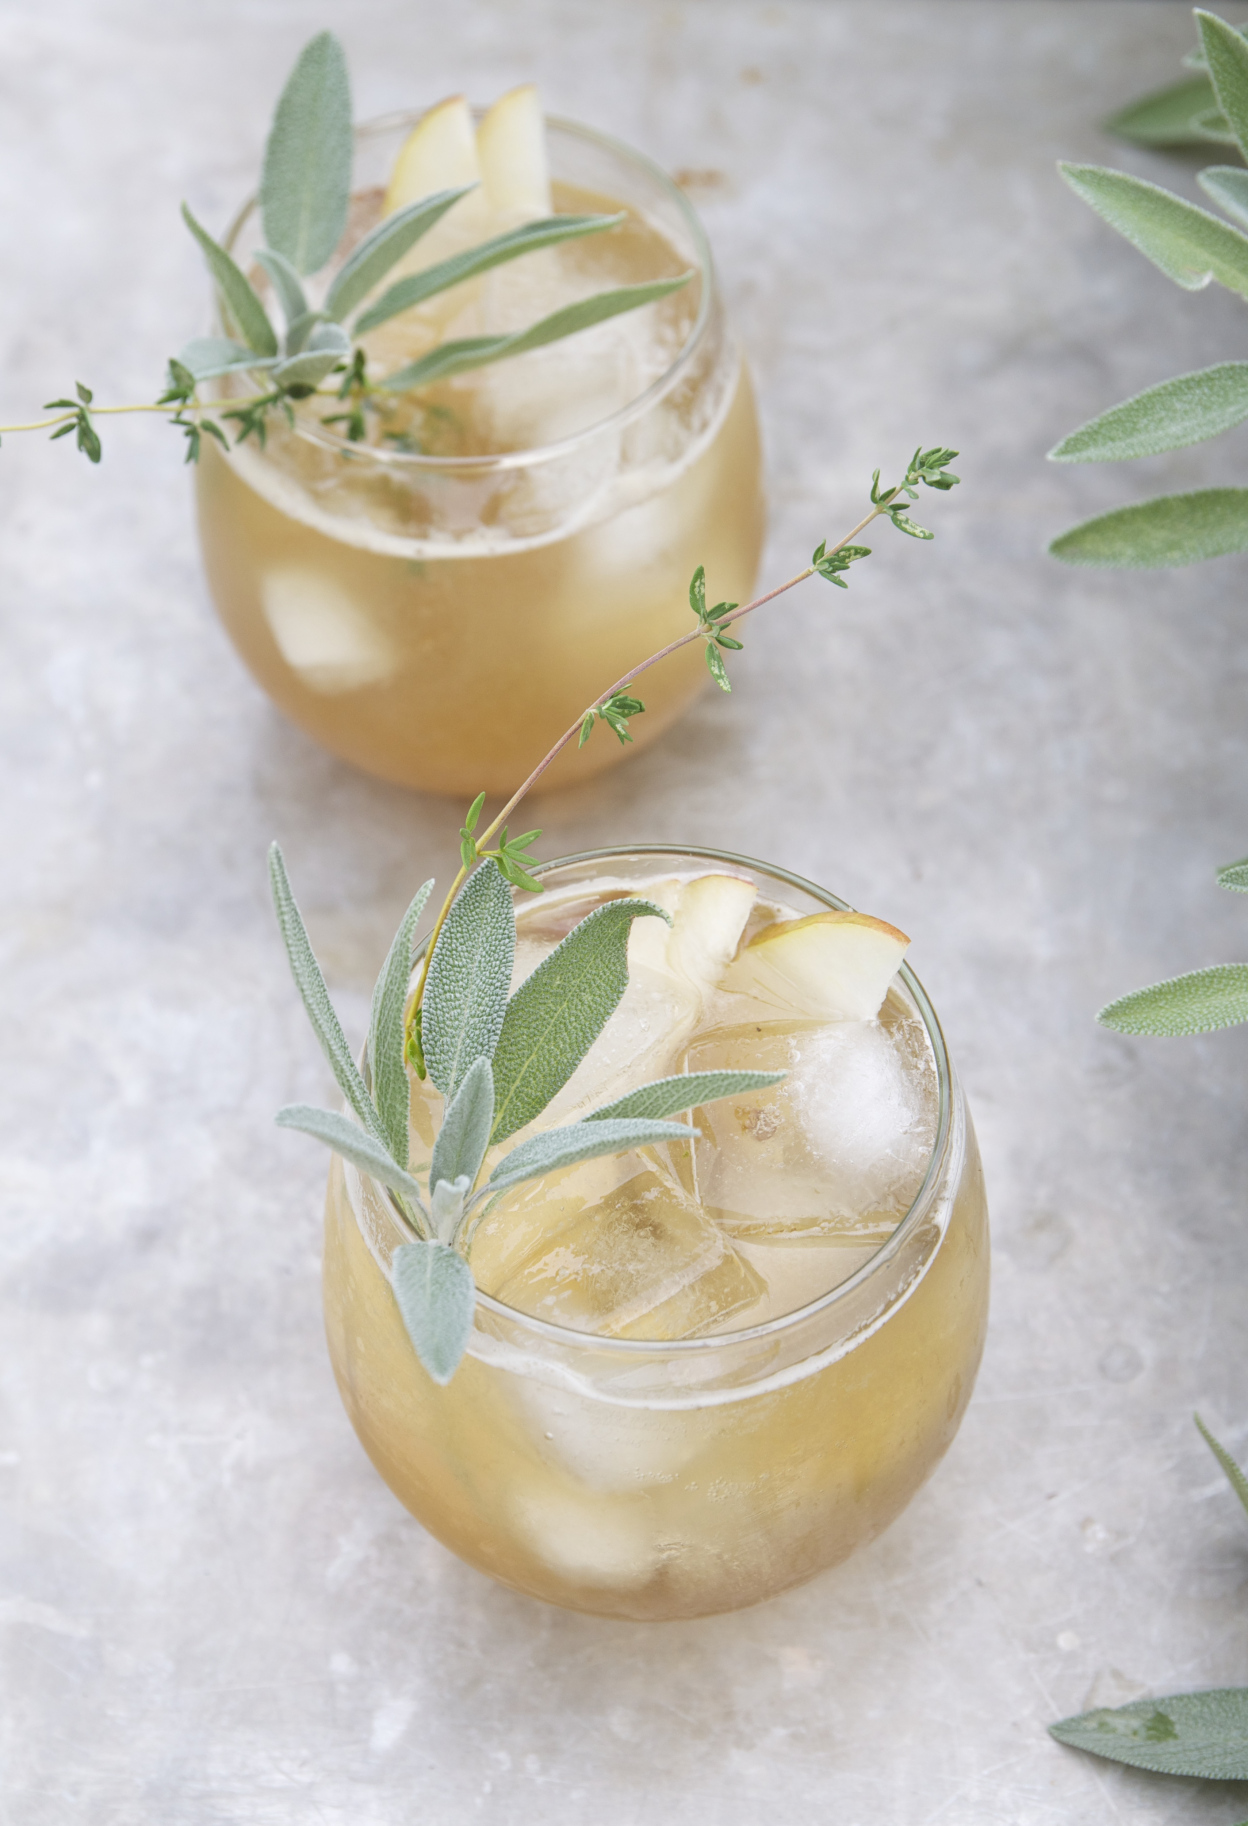 Bourbon + Spiked Pear Cocktail from Holly & Flora